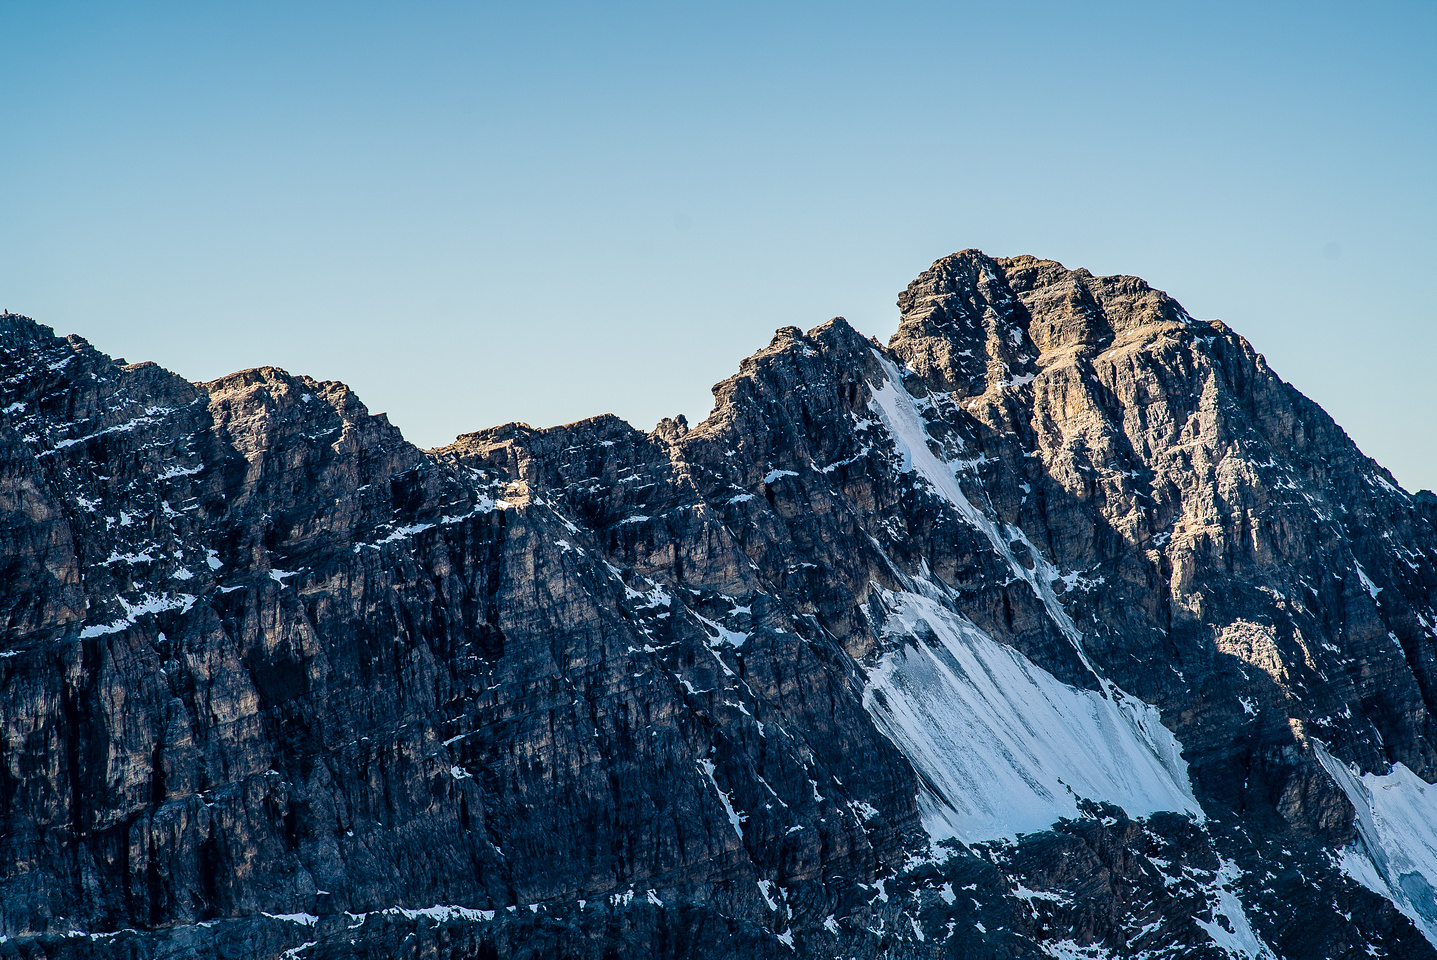 A closeup view of the difficult ridge and summit block of White Man Mountain.